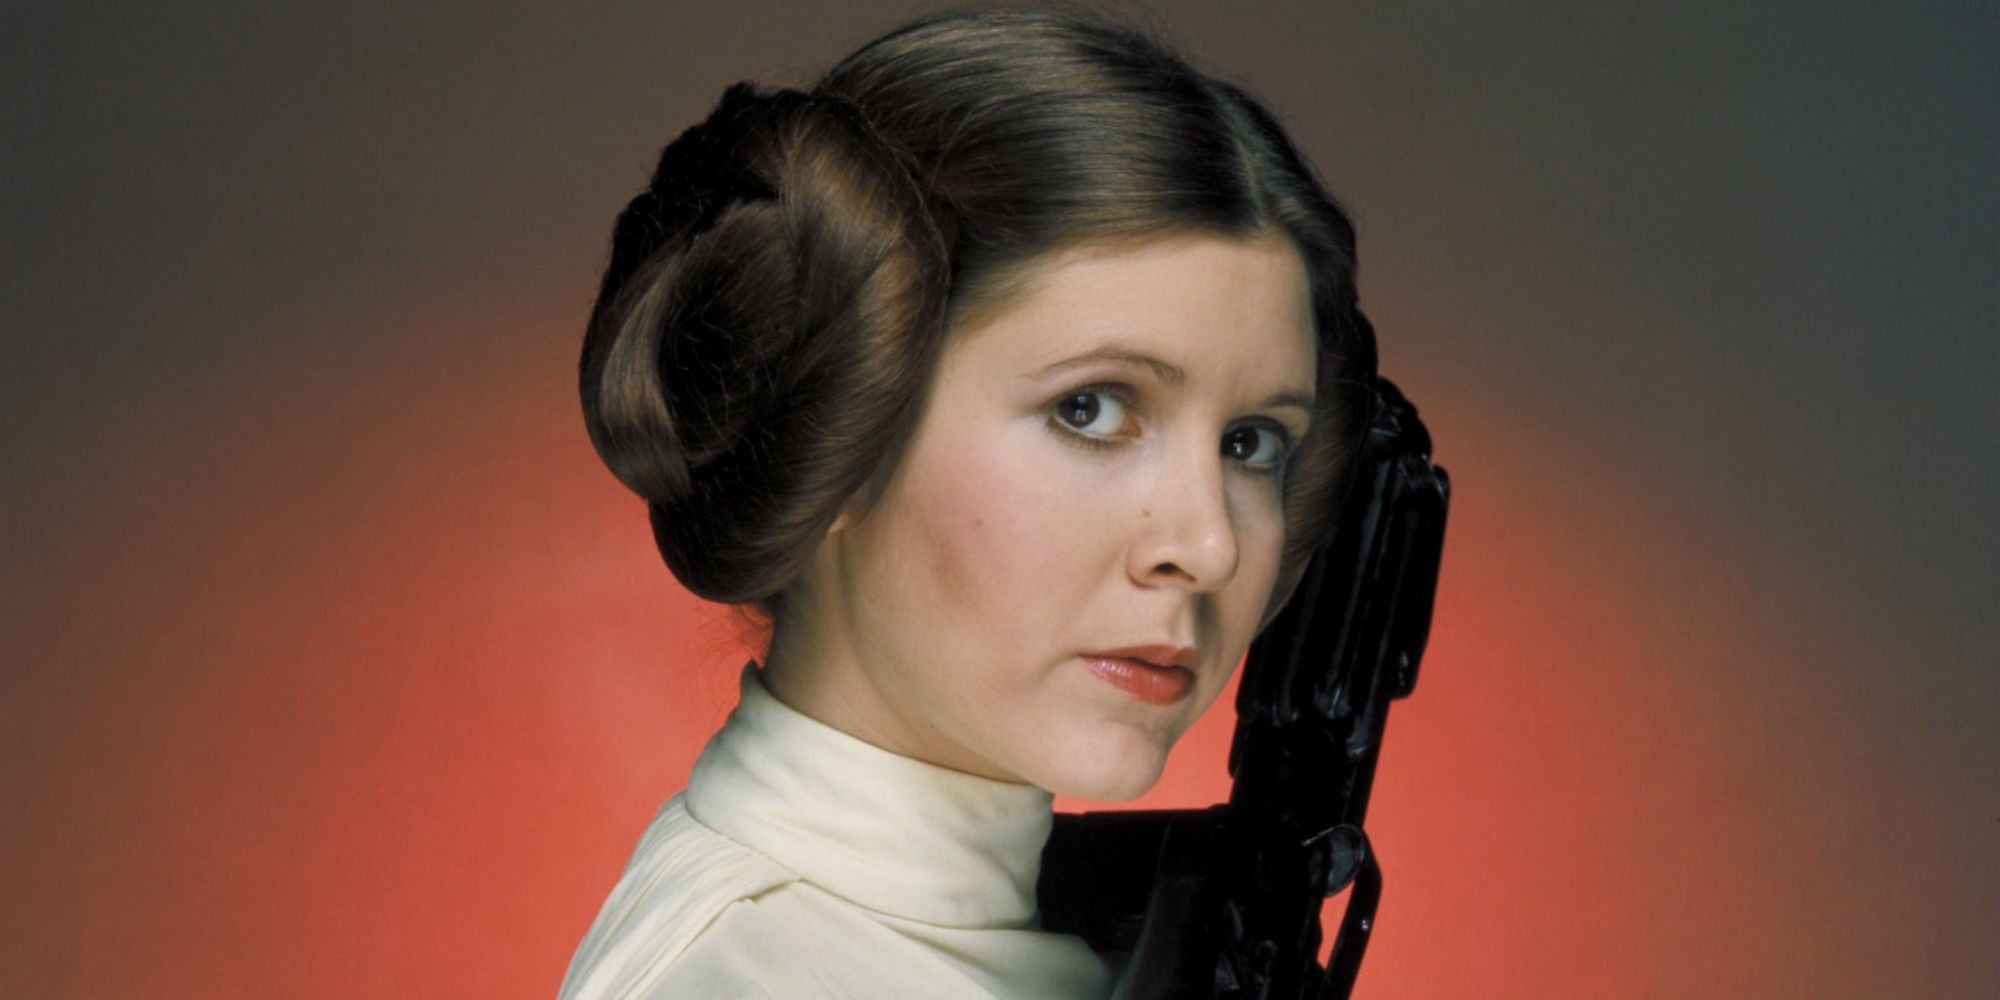 36+ Coiffure fille star wars inspiration